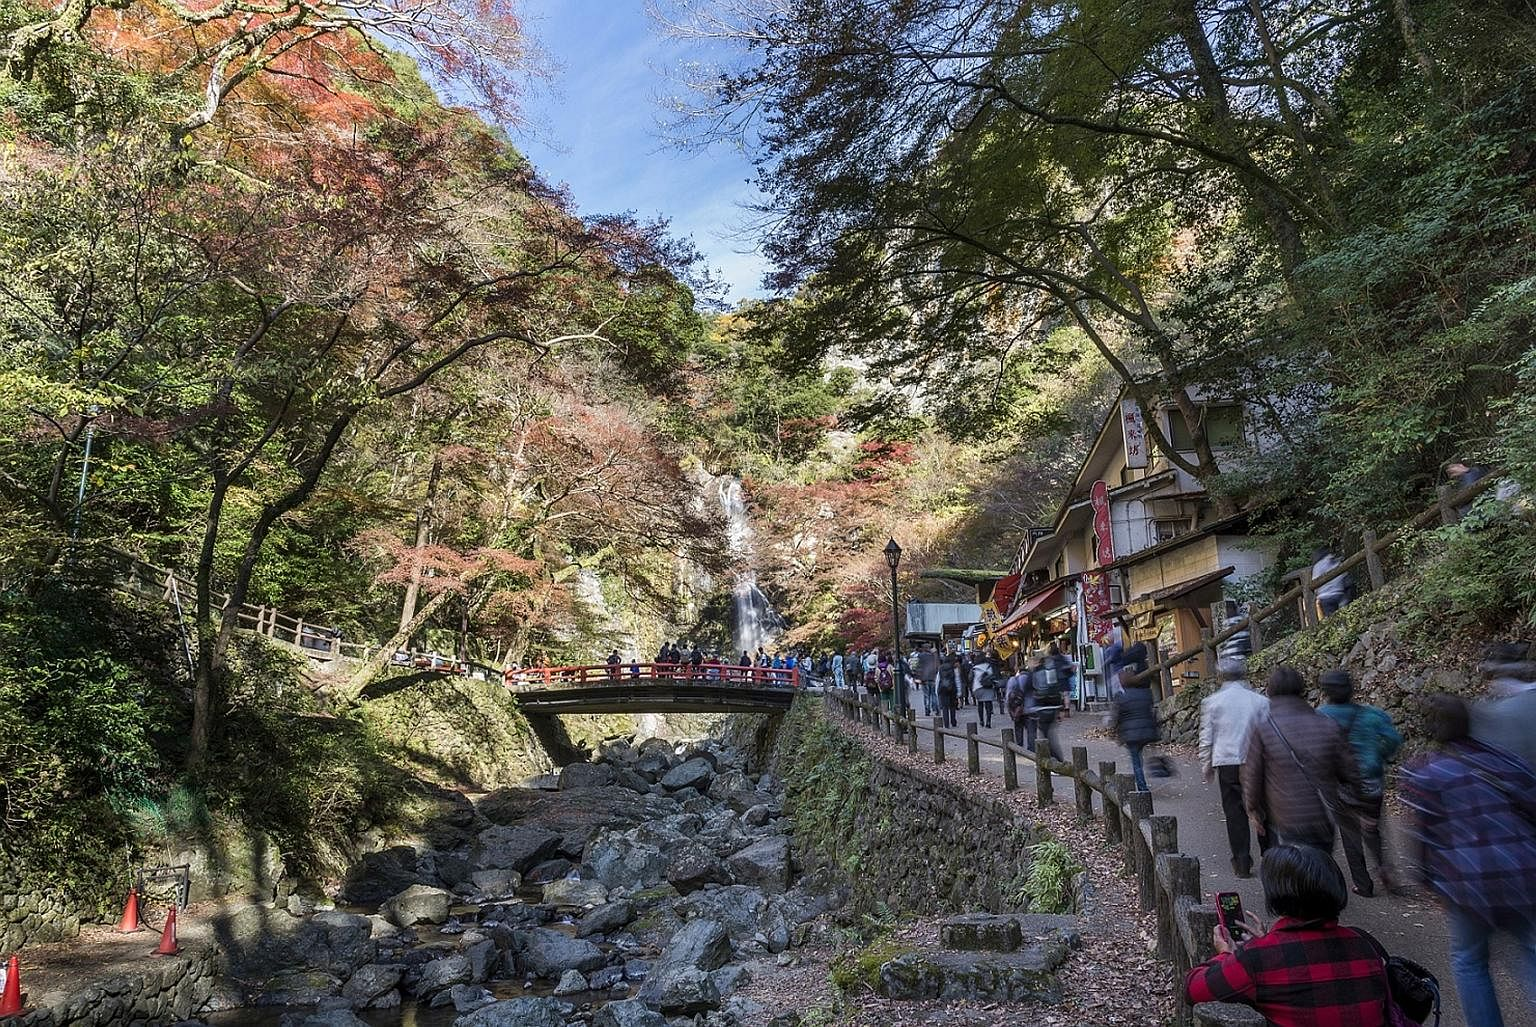 Forested Minoo Park's hidden attraction is its 33m waterfall.